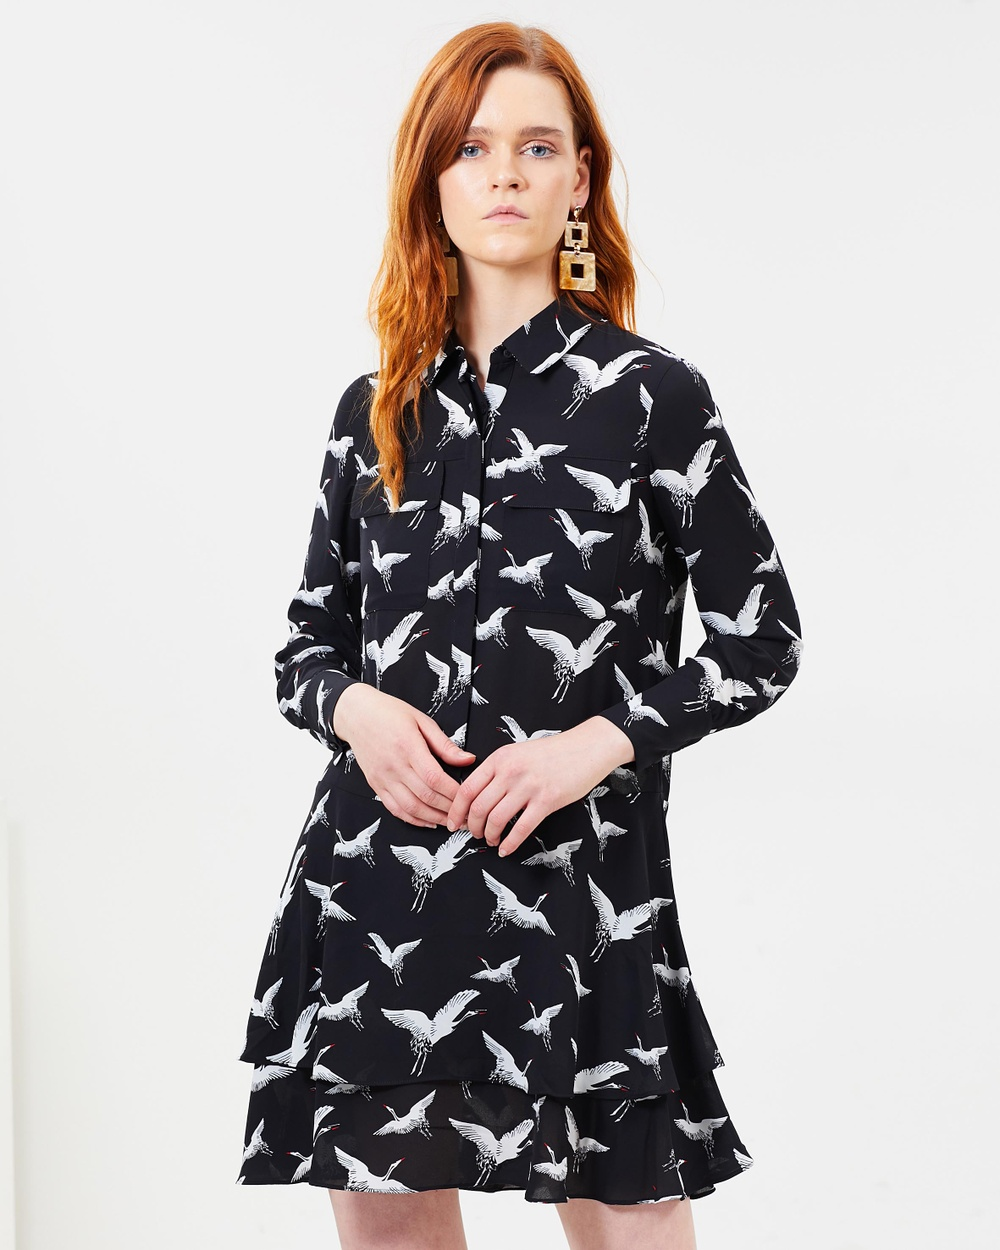 Whistles Crane Print Shirt Dress Printed Dresses Black & Multi Crane Print Shirt Dress